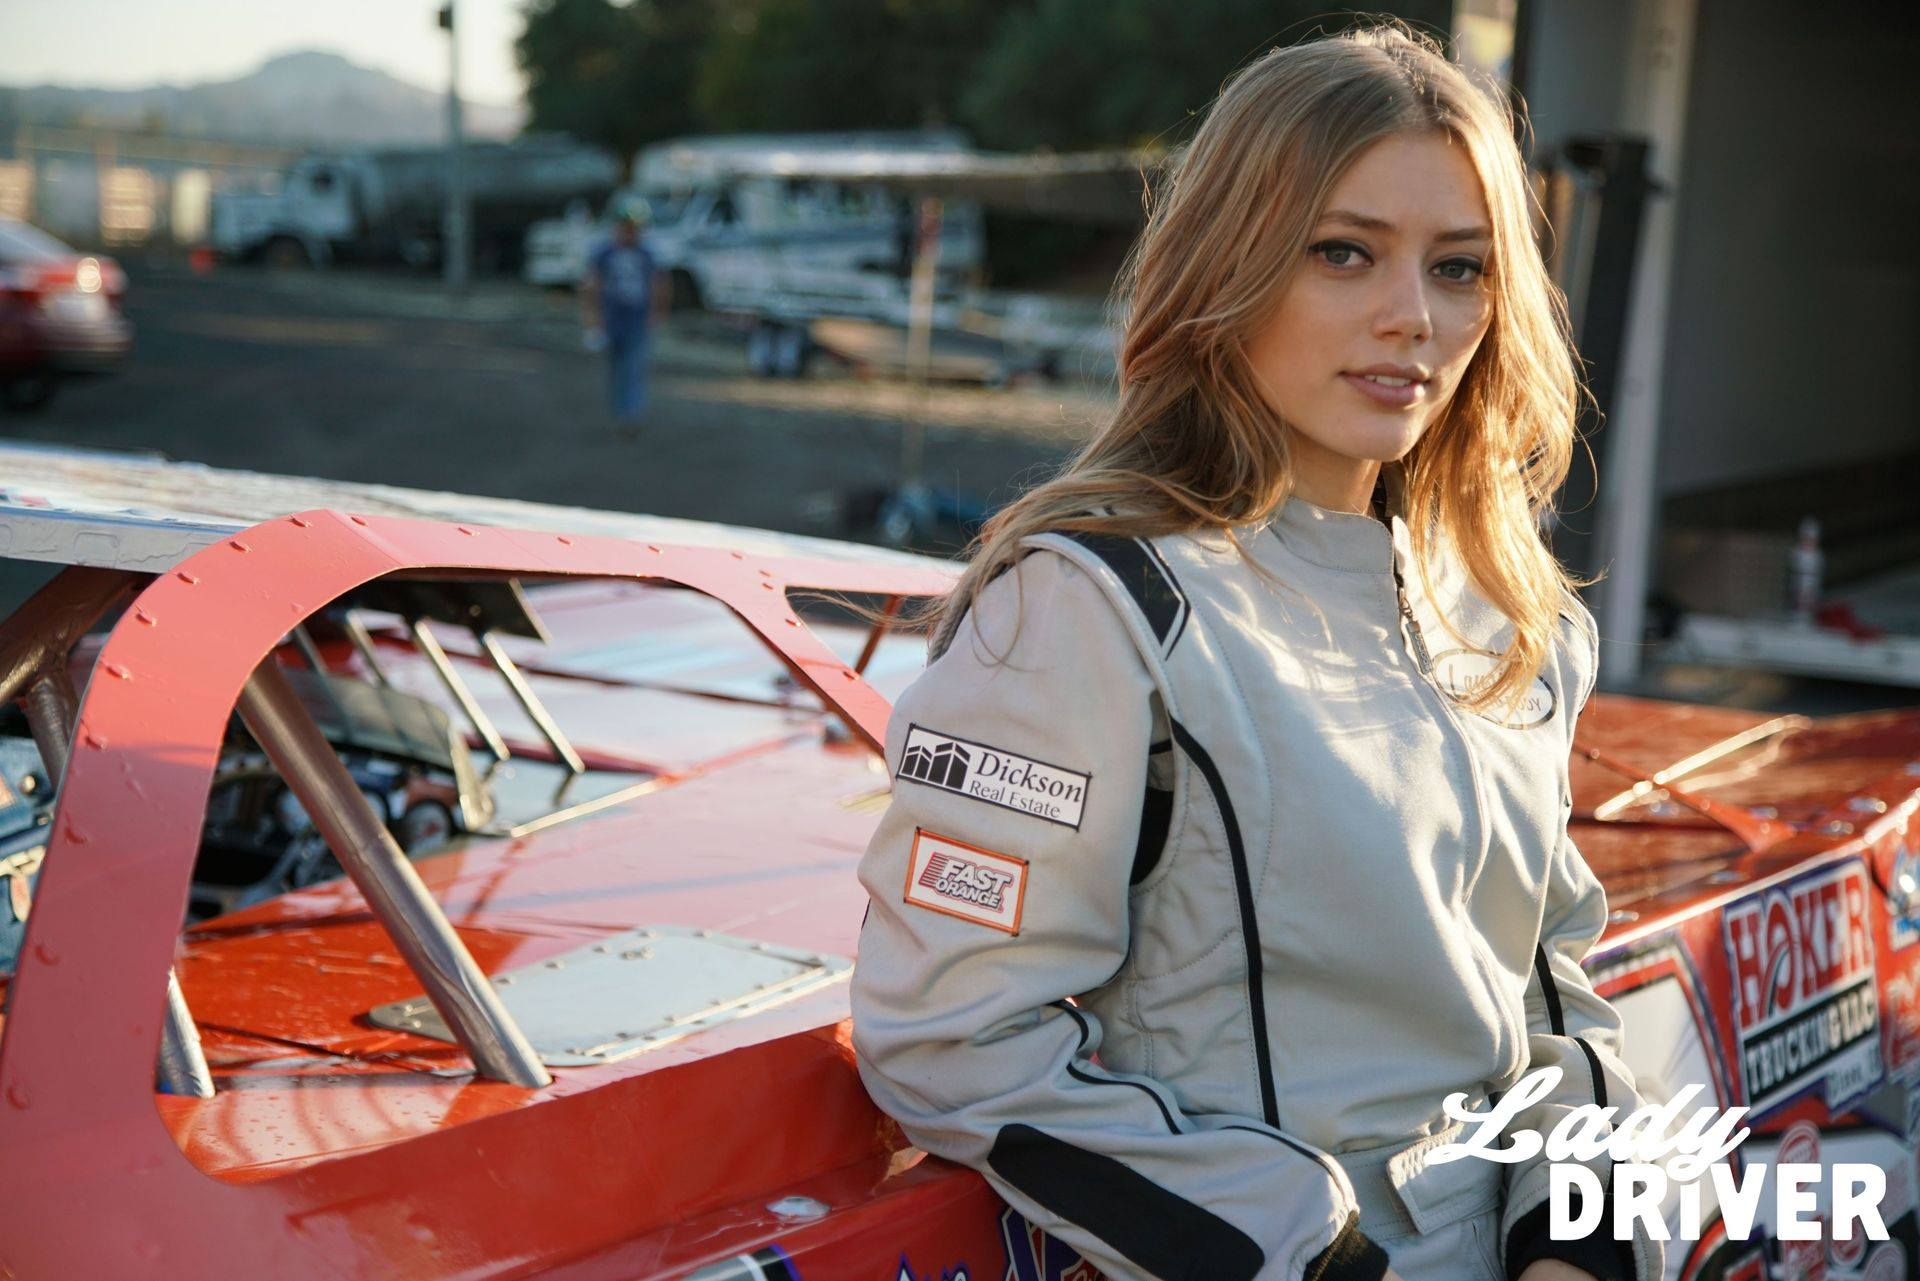 Nascar Racing Games >> Lady Driver: Dirt racing movie features real-world dirt late model stars - Racing News